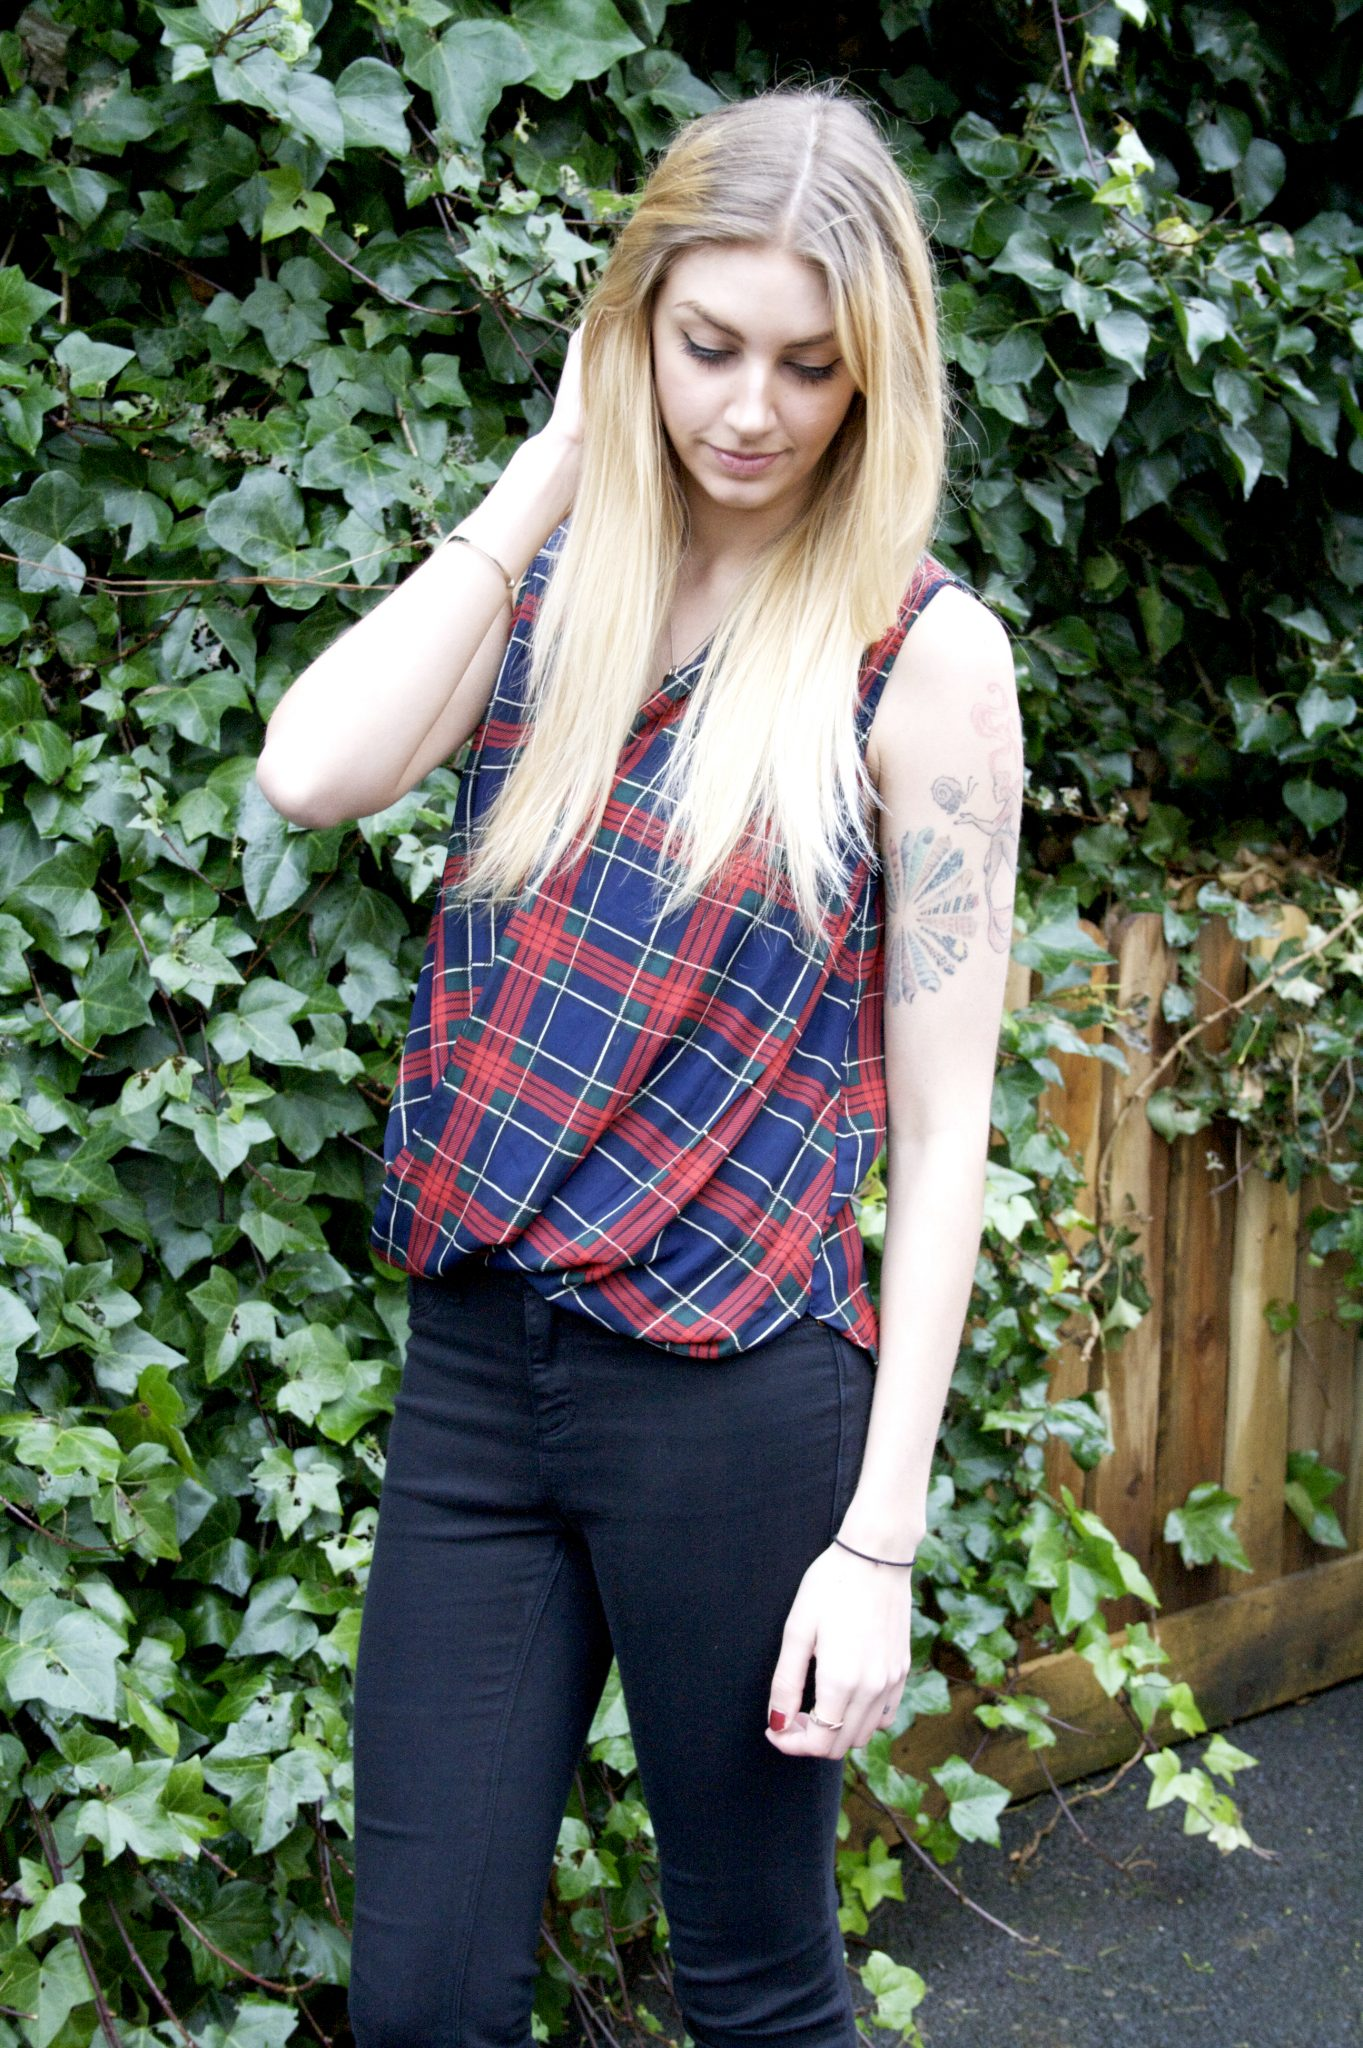 Manchester based fashion and lifestyle blogger. Tiger mist tartan vest, river island jeans, toni and guy blonde, tattoos.